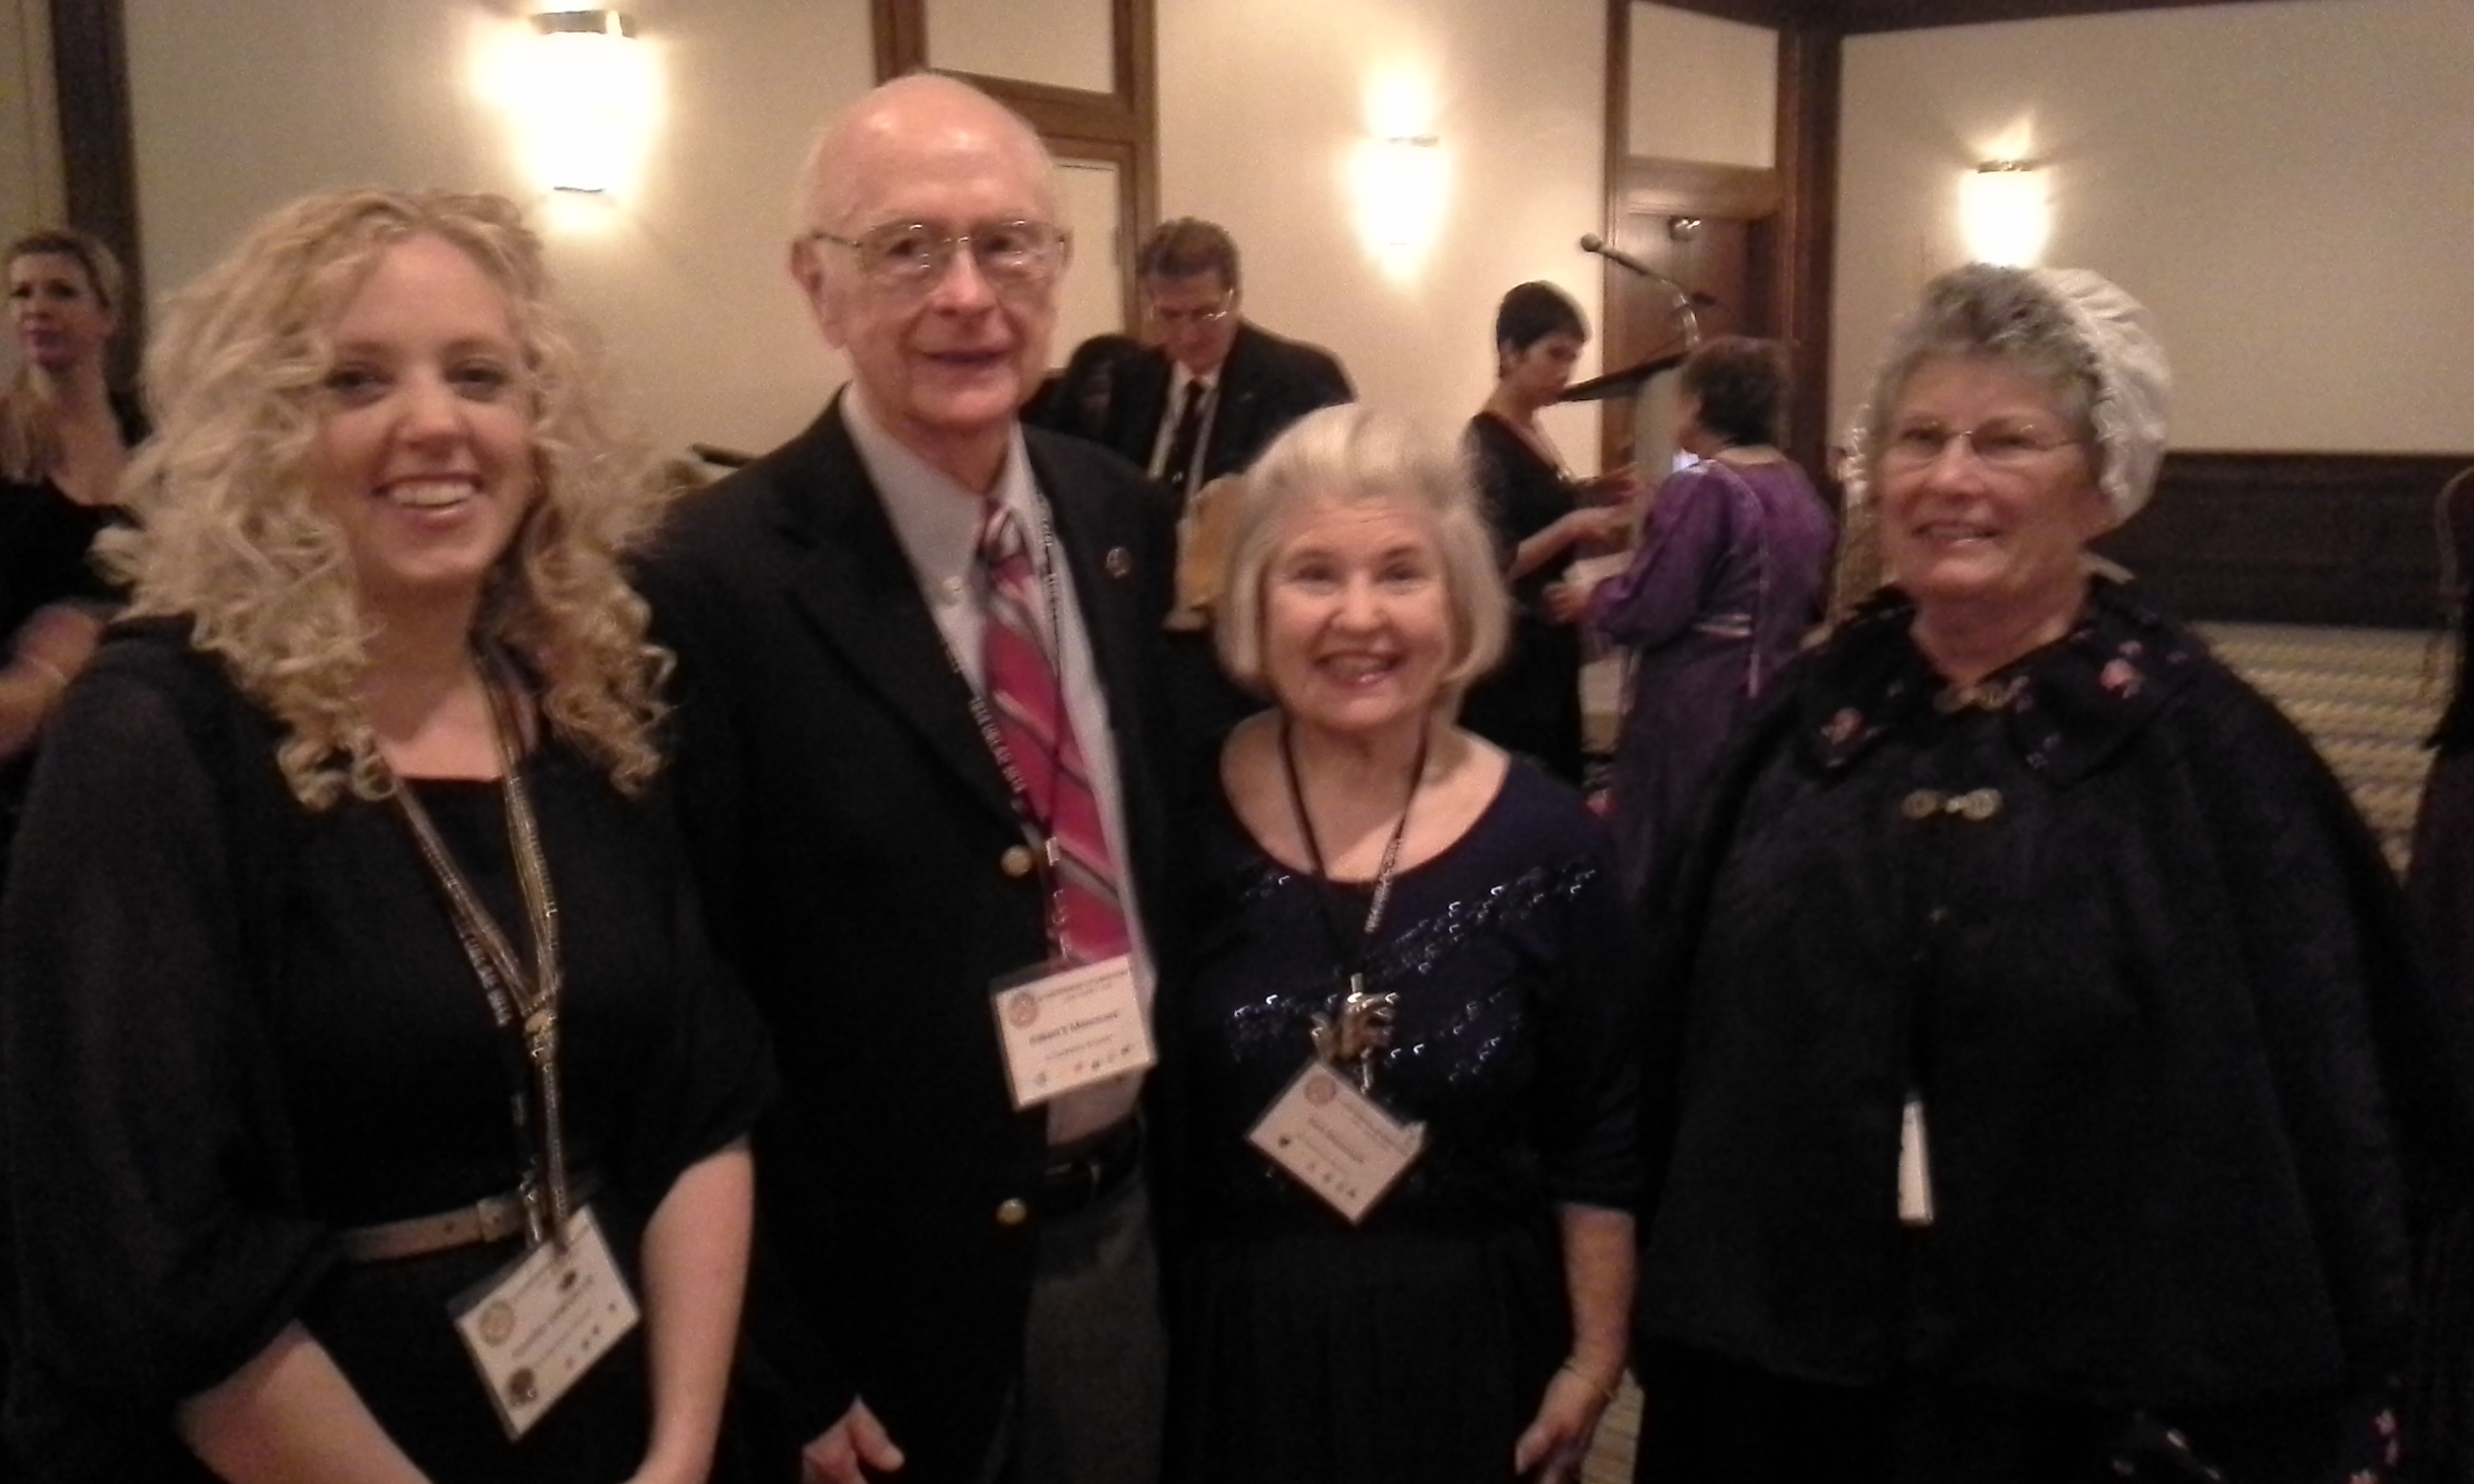 100th Anniversary UELAC Conference. Toronto, ON. June 2014. L-R: Jennifer DeBruin, Robert and Sarah Memmet, Lorraine Reoch